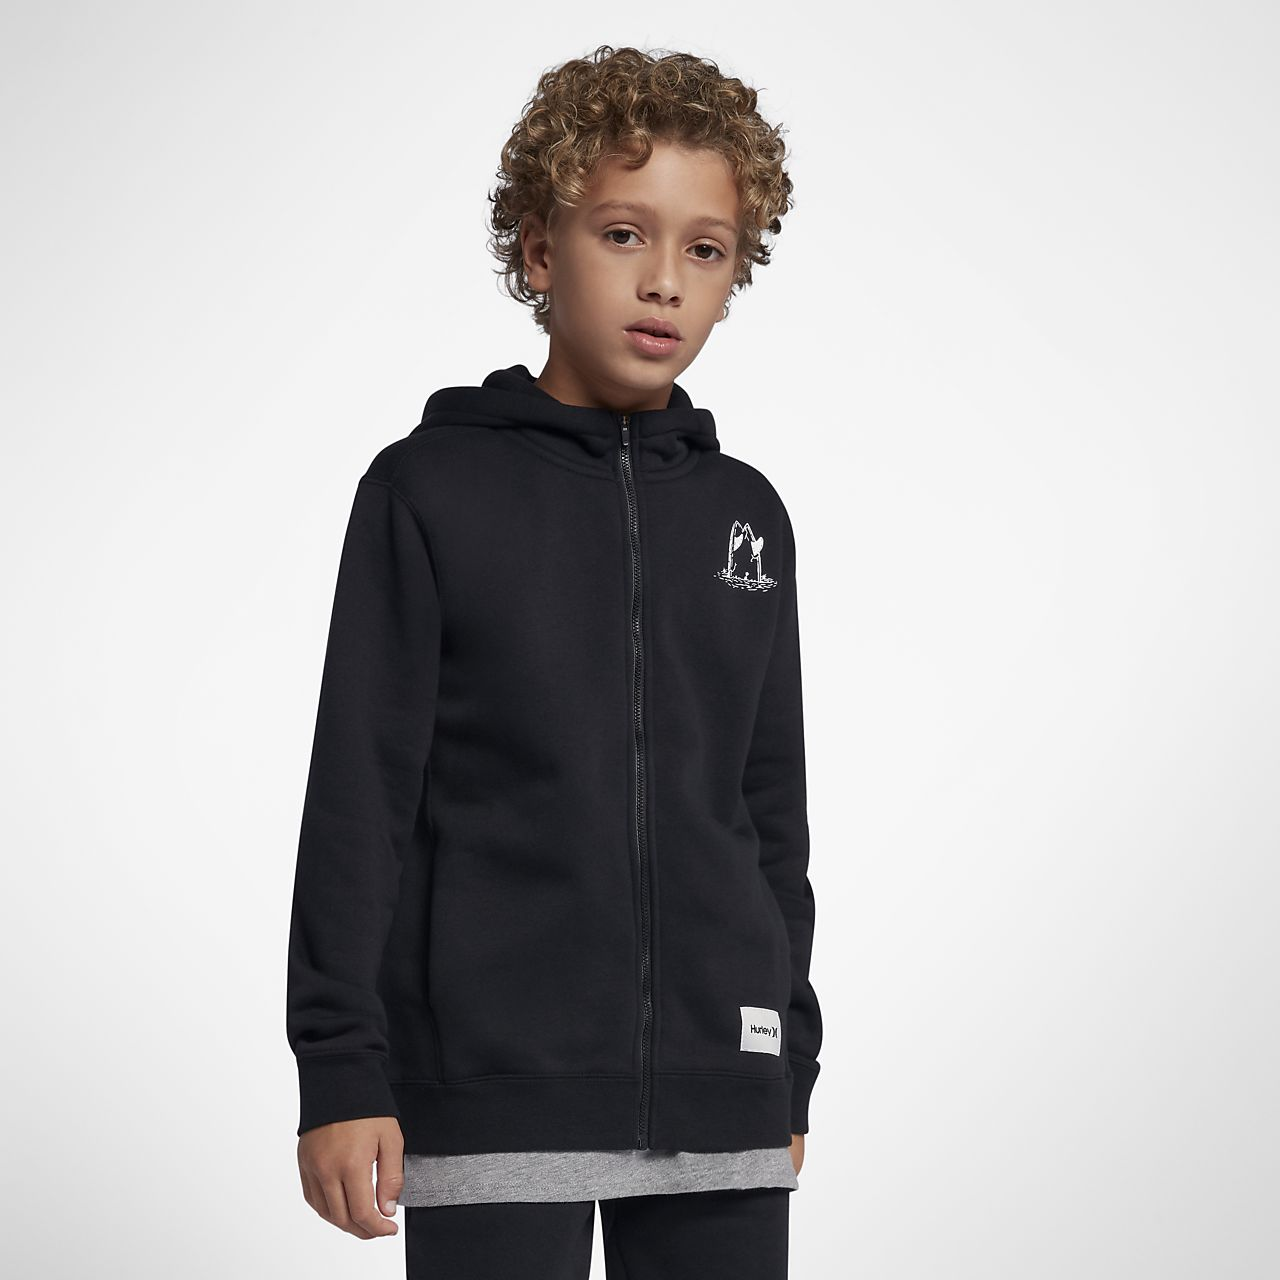 Hurley Surf Check Rip Boys' Full-Zip Hoodie